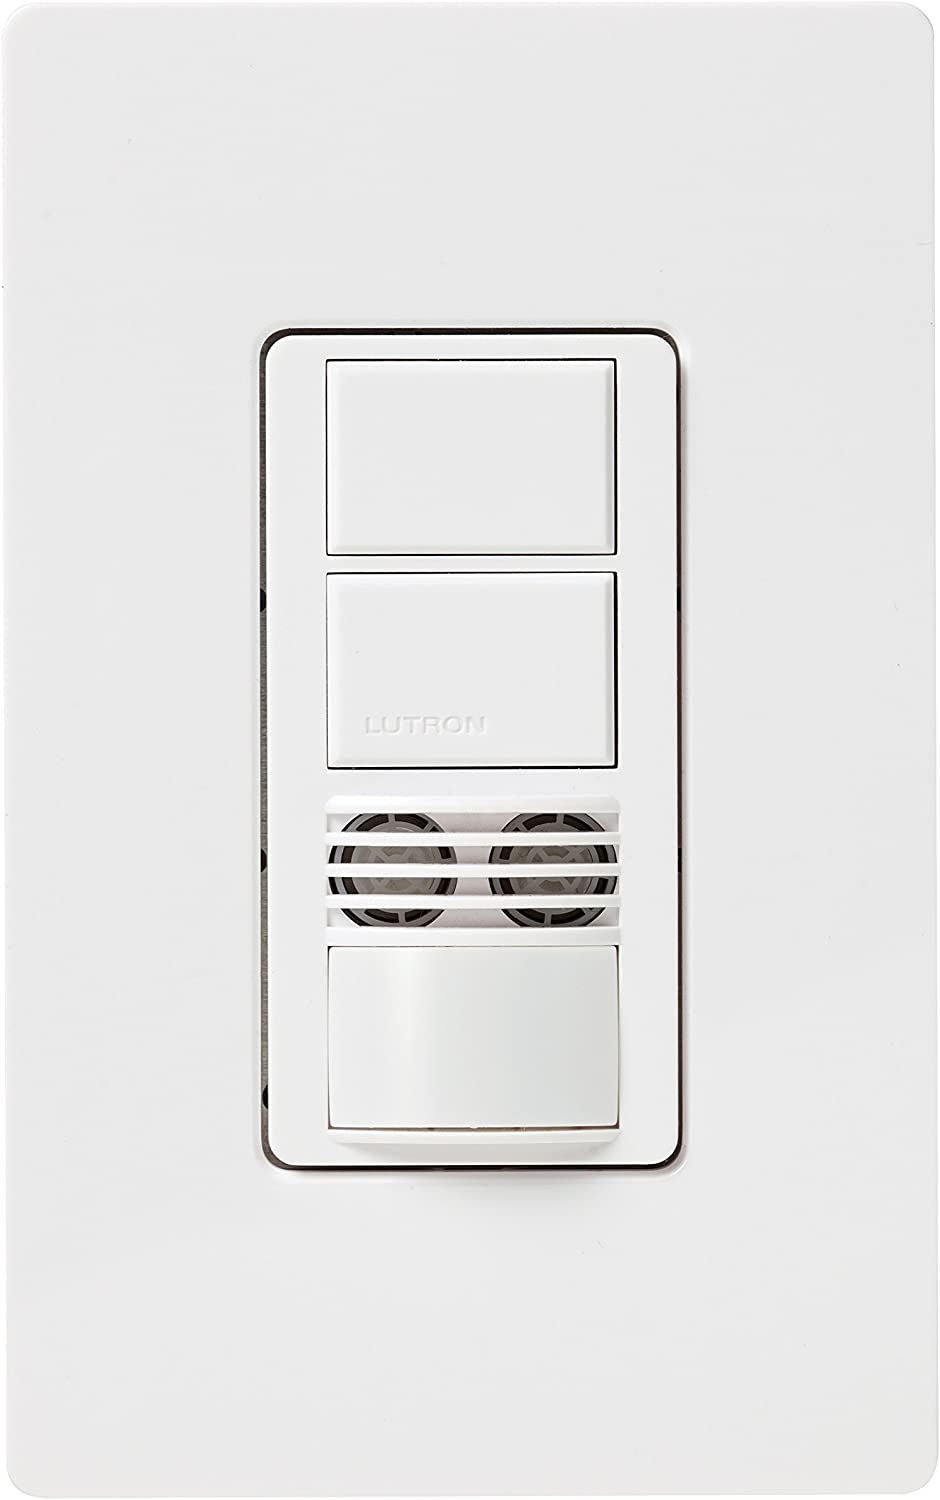 neutral required Lutron Maestro Dual Tech Dual Circuit Occupancy Sensor Switch 6 Amp 3-Way//Multi-Location MS-B202-IV Ivory